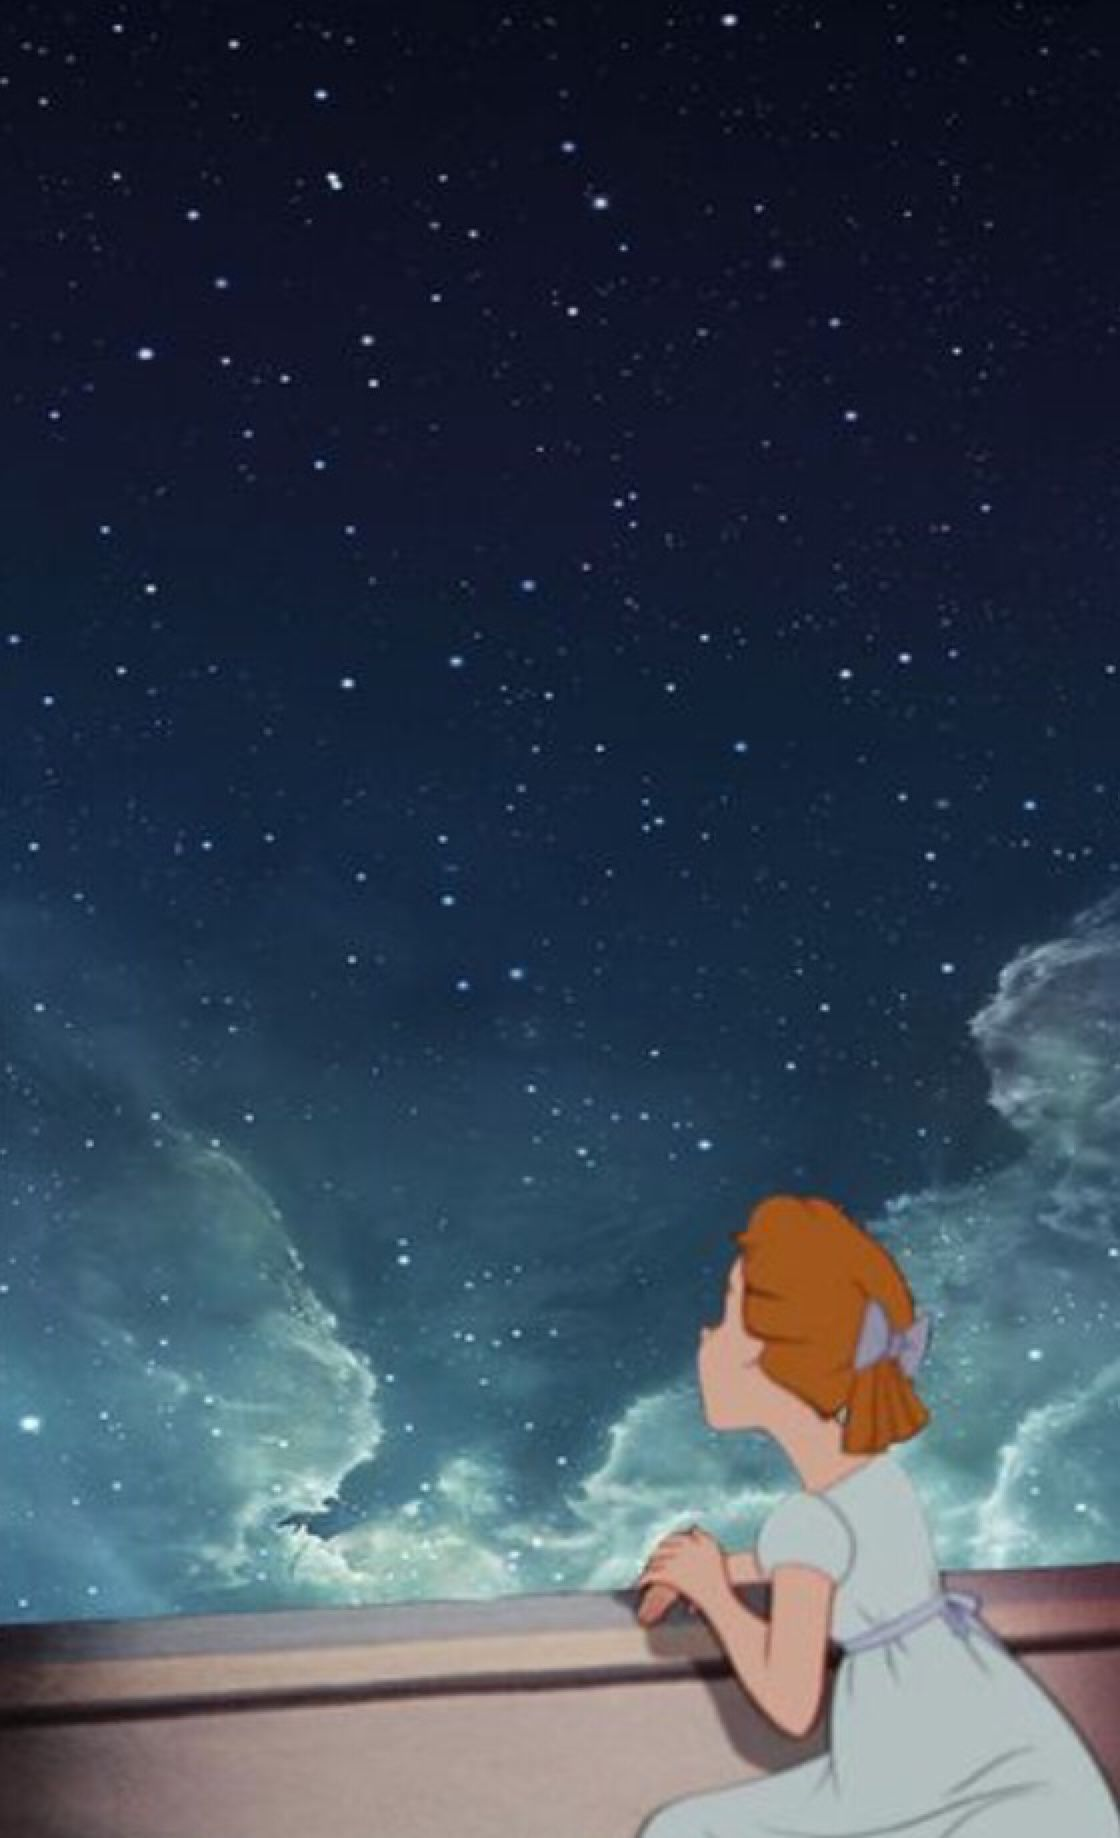 Iphone Wallpapers Disney Background Peter Pan Disney Wallpaper Iphone Disney